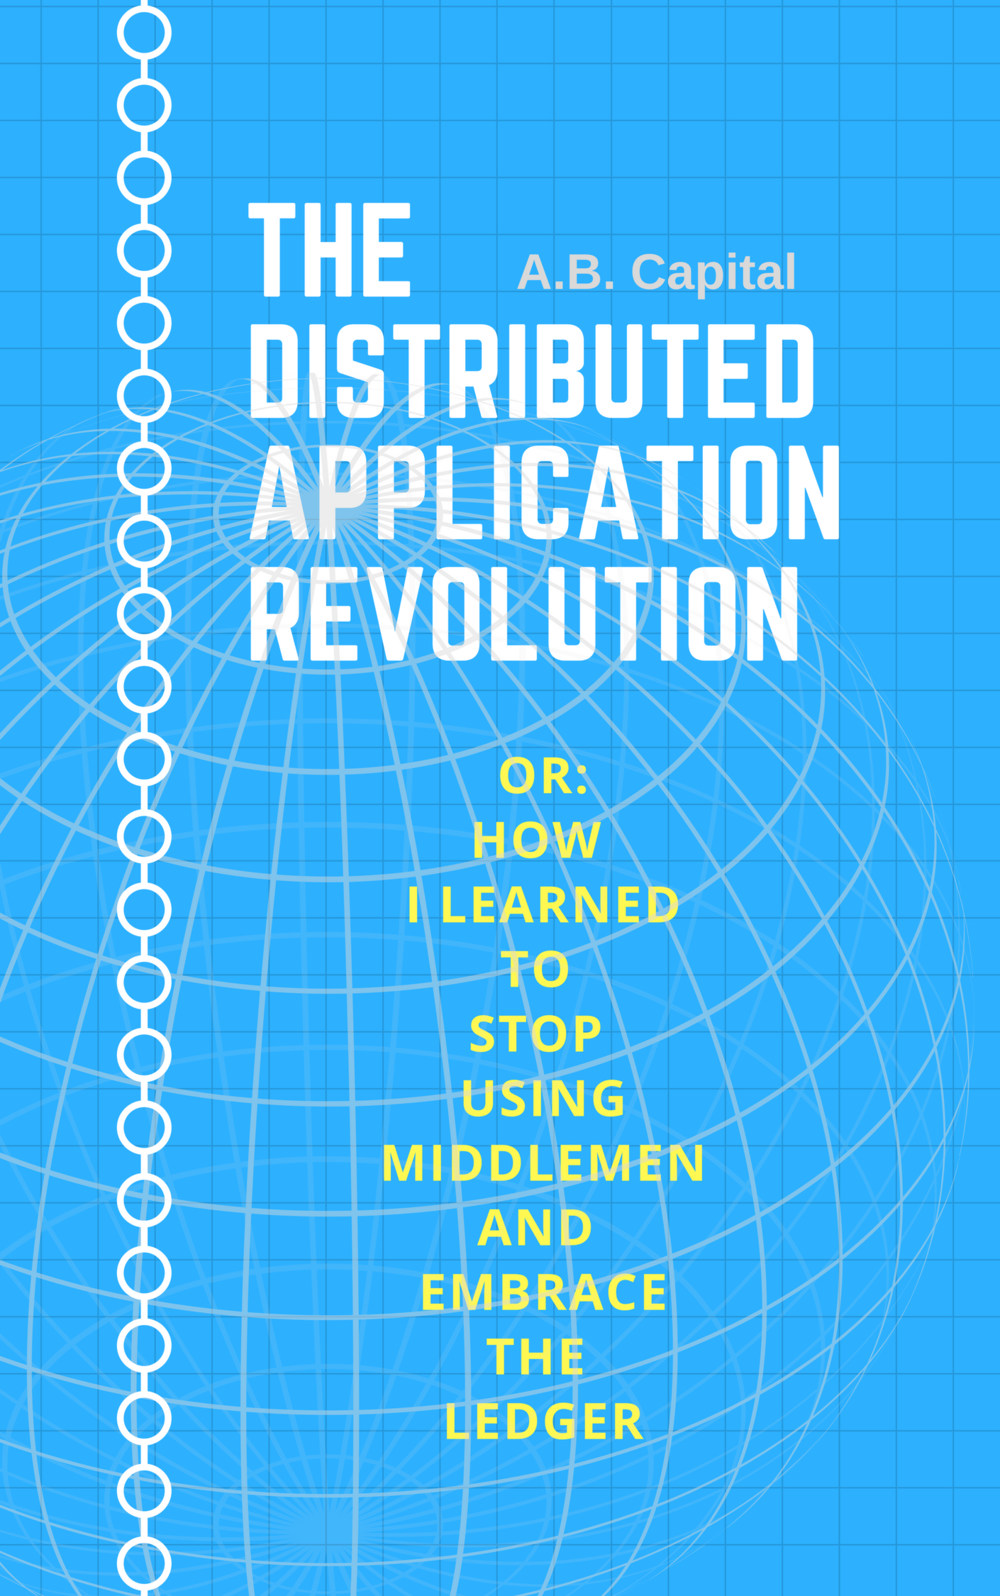 The Distributed Application Revolution - OR: How I Learned to Stop Using Middlemen and Embrace the Ledger